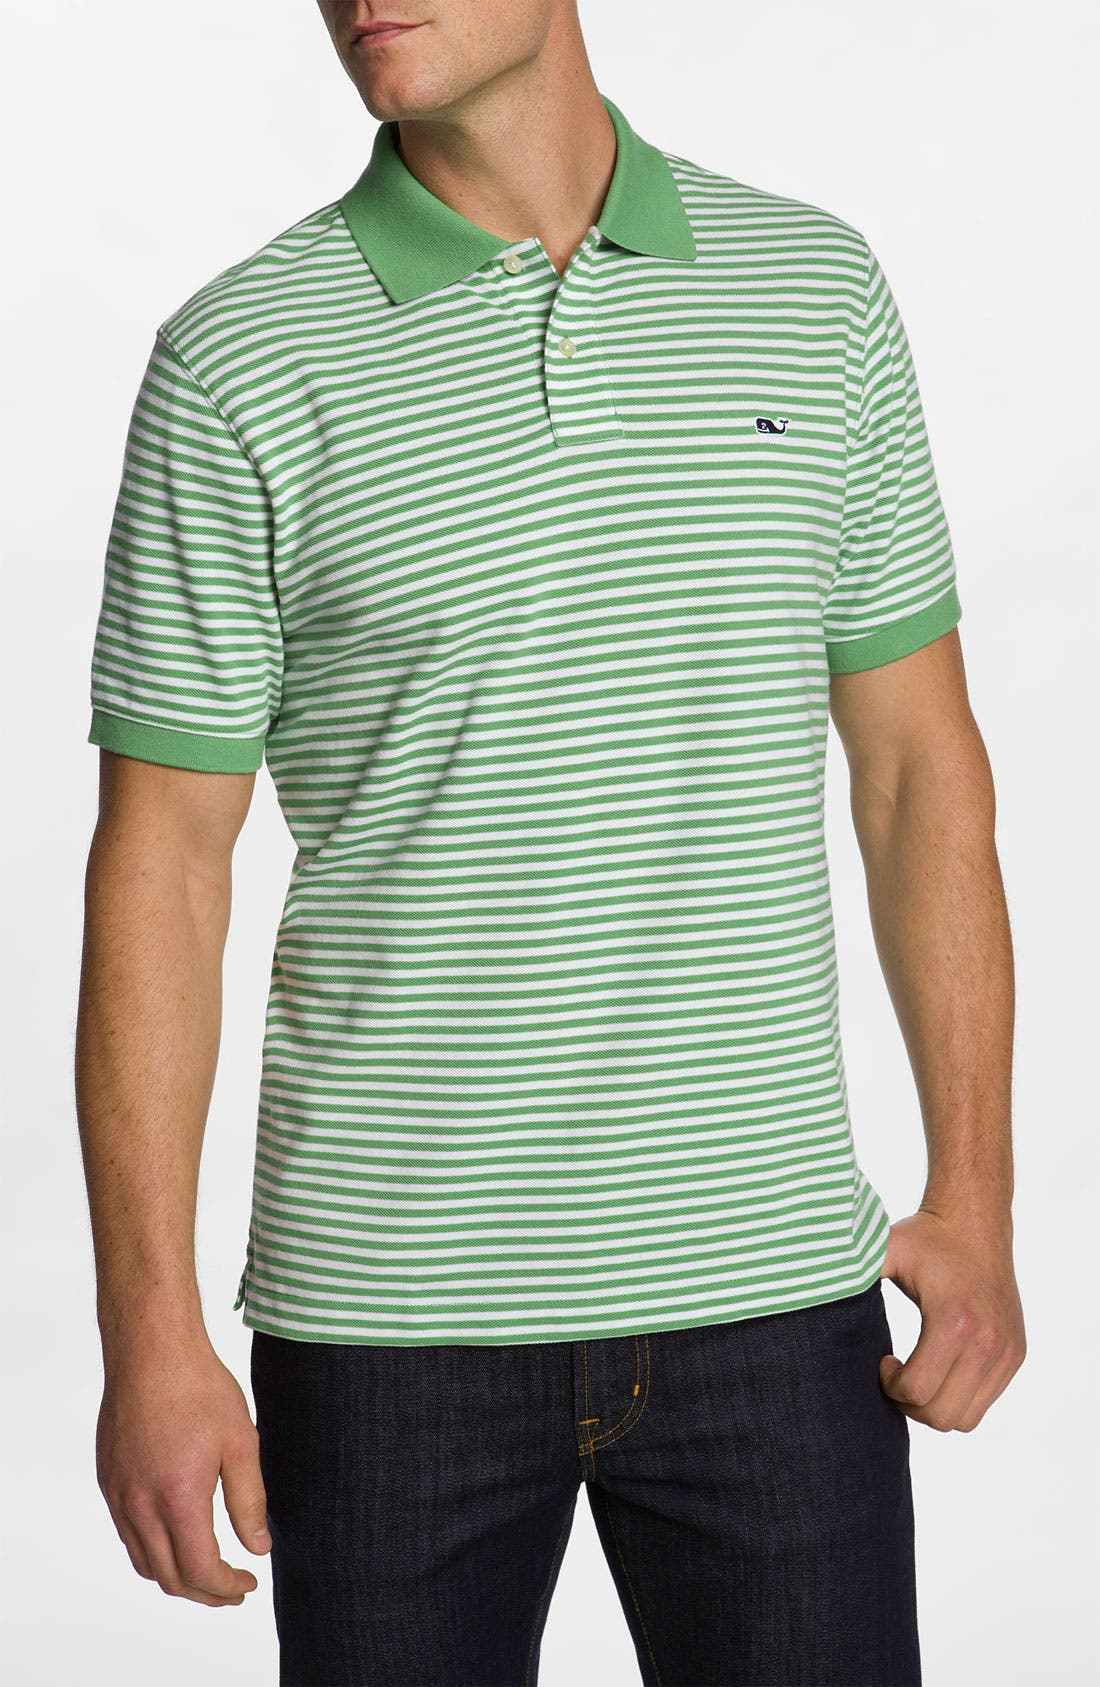 Alternate Image 1 Selected - Vineyard Vines 'State Line Stripe - Classic' Piqué Knit Polo